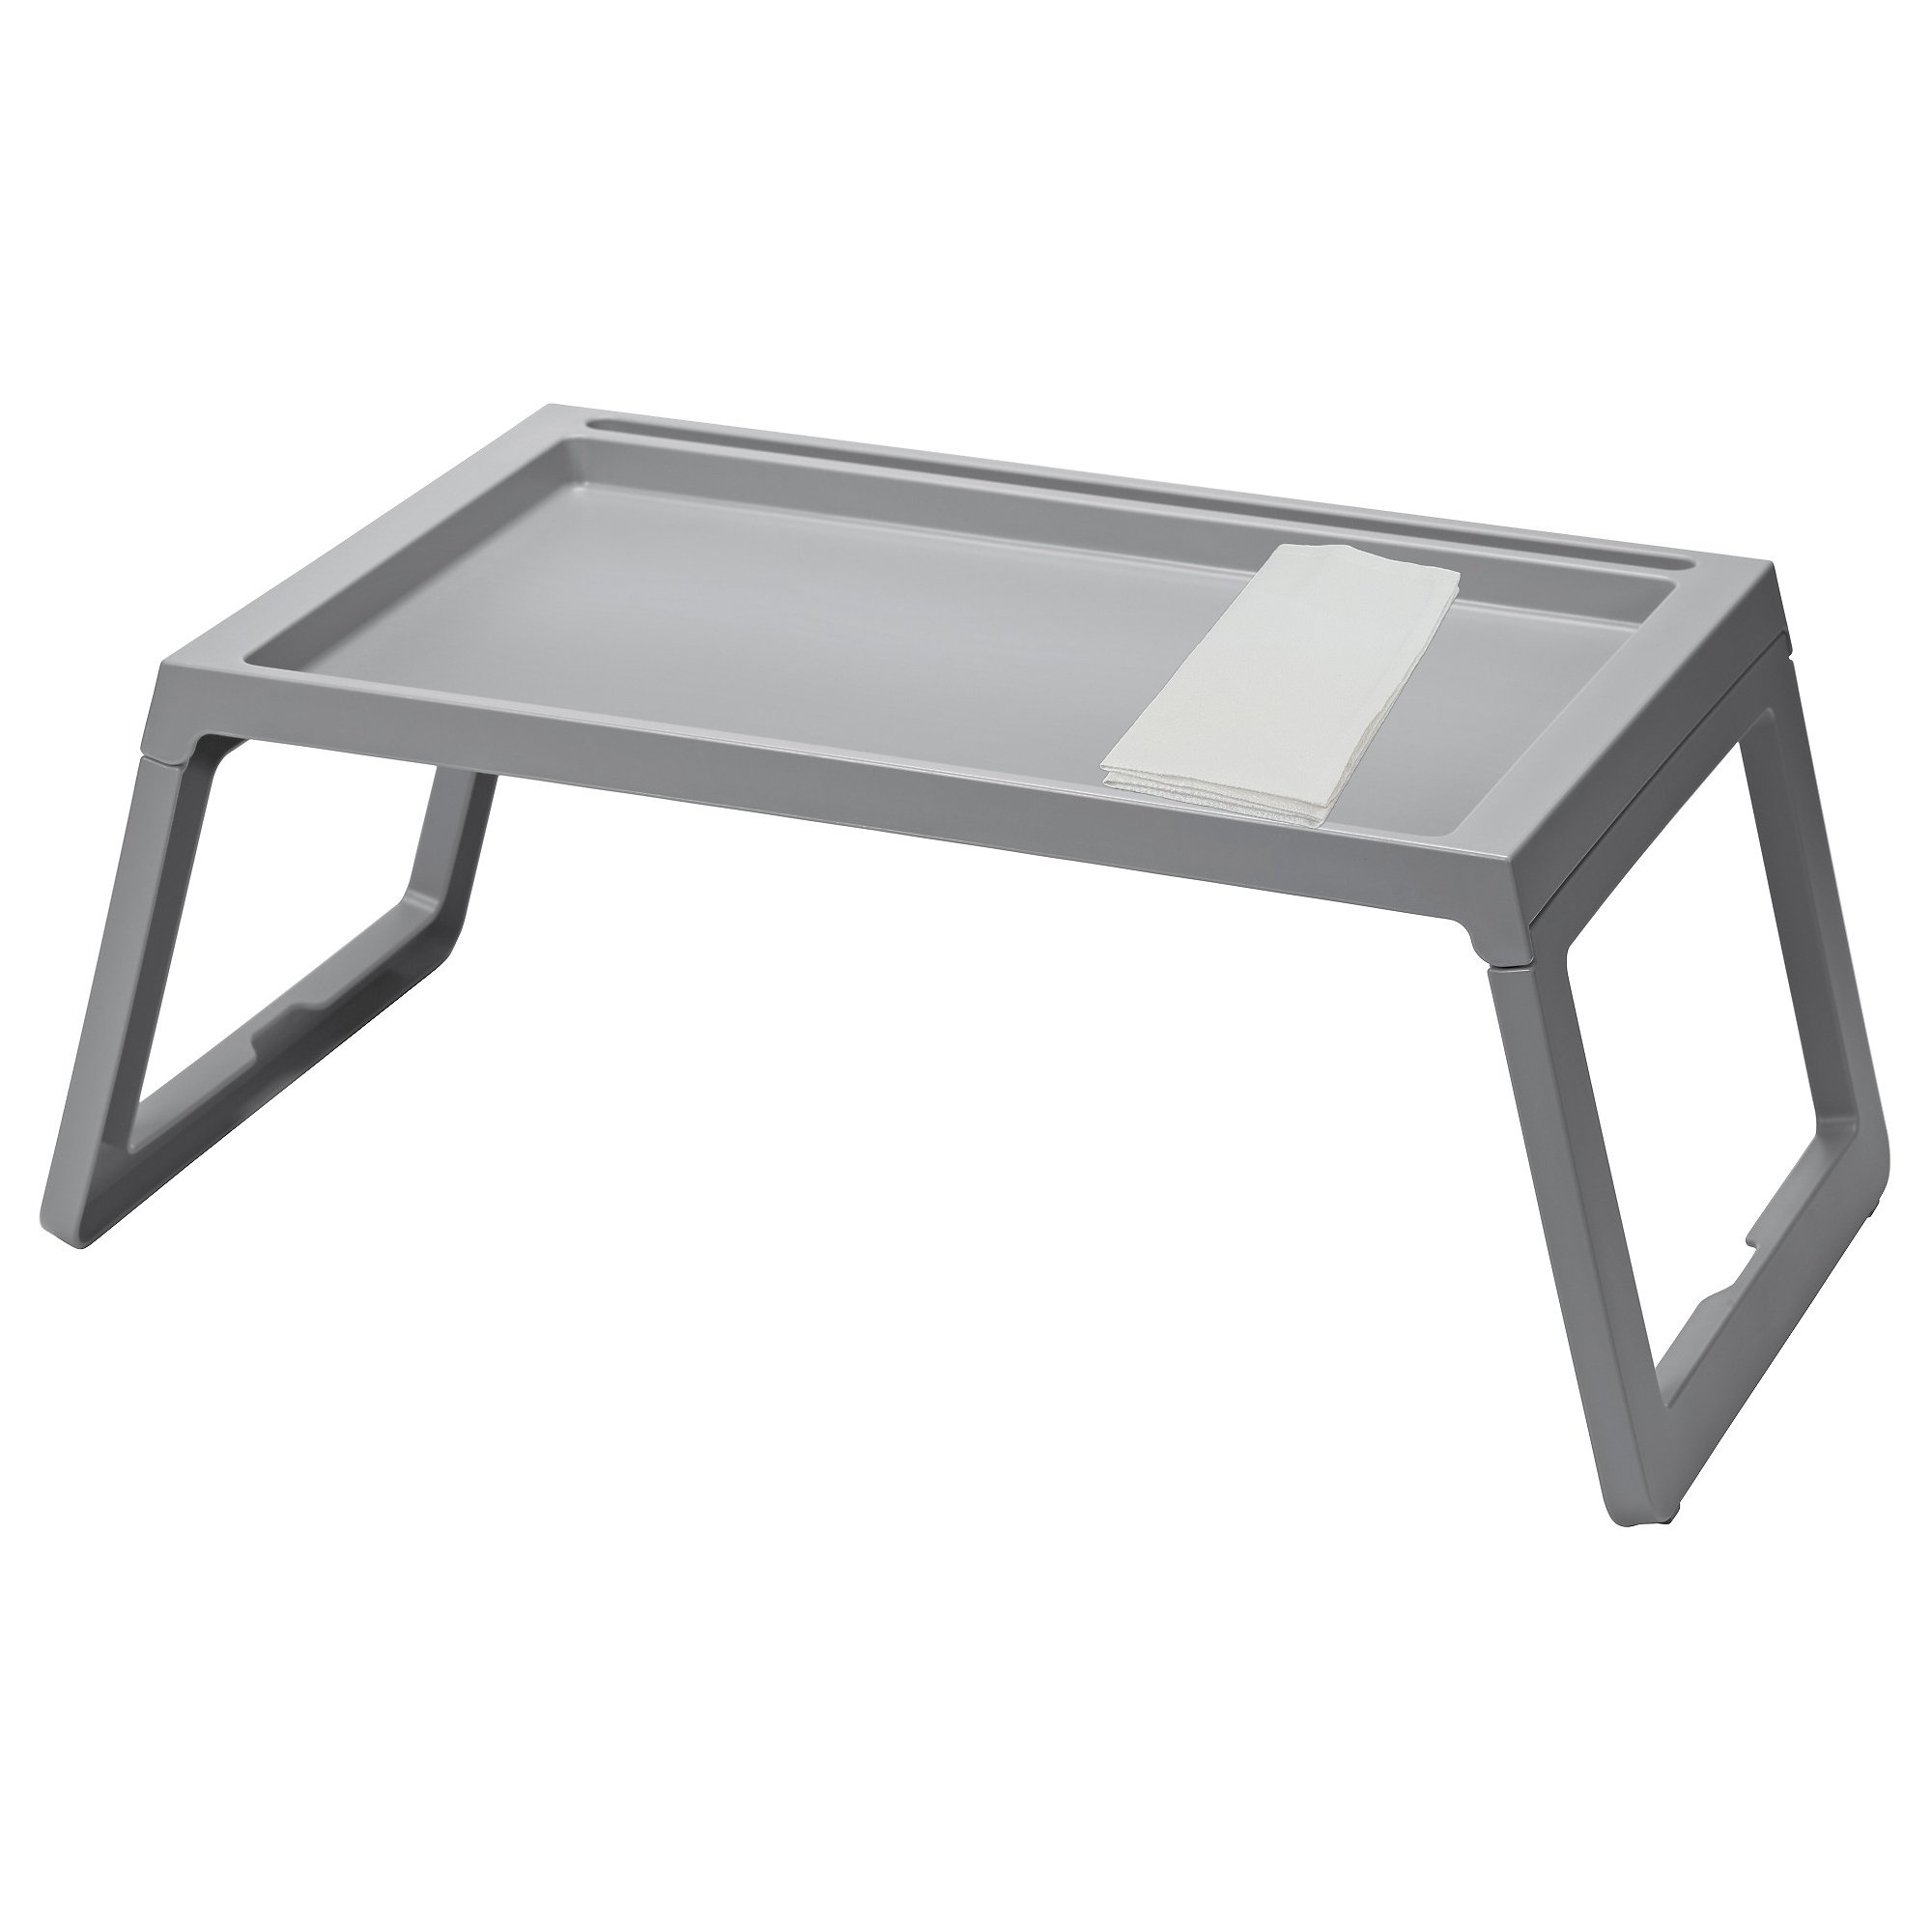 IKEA TV Lap Tray, Gray - Good For TV, Movies, Breakfast in Bed, Lunch, Brunch, Dinner by Klipsk